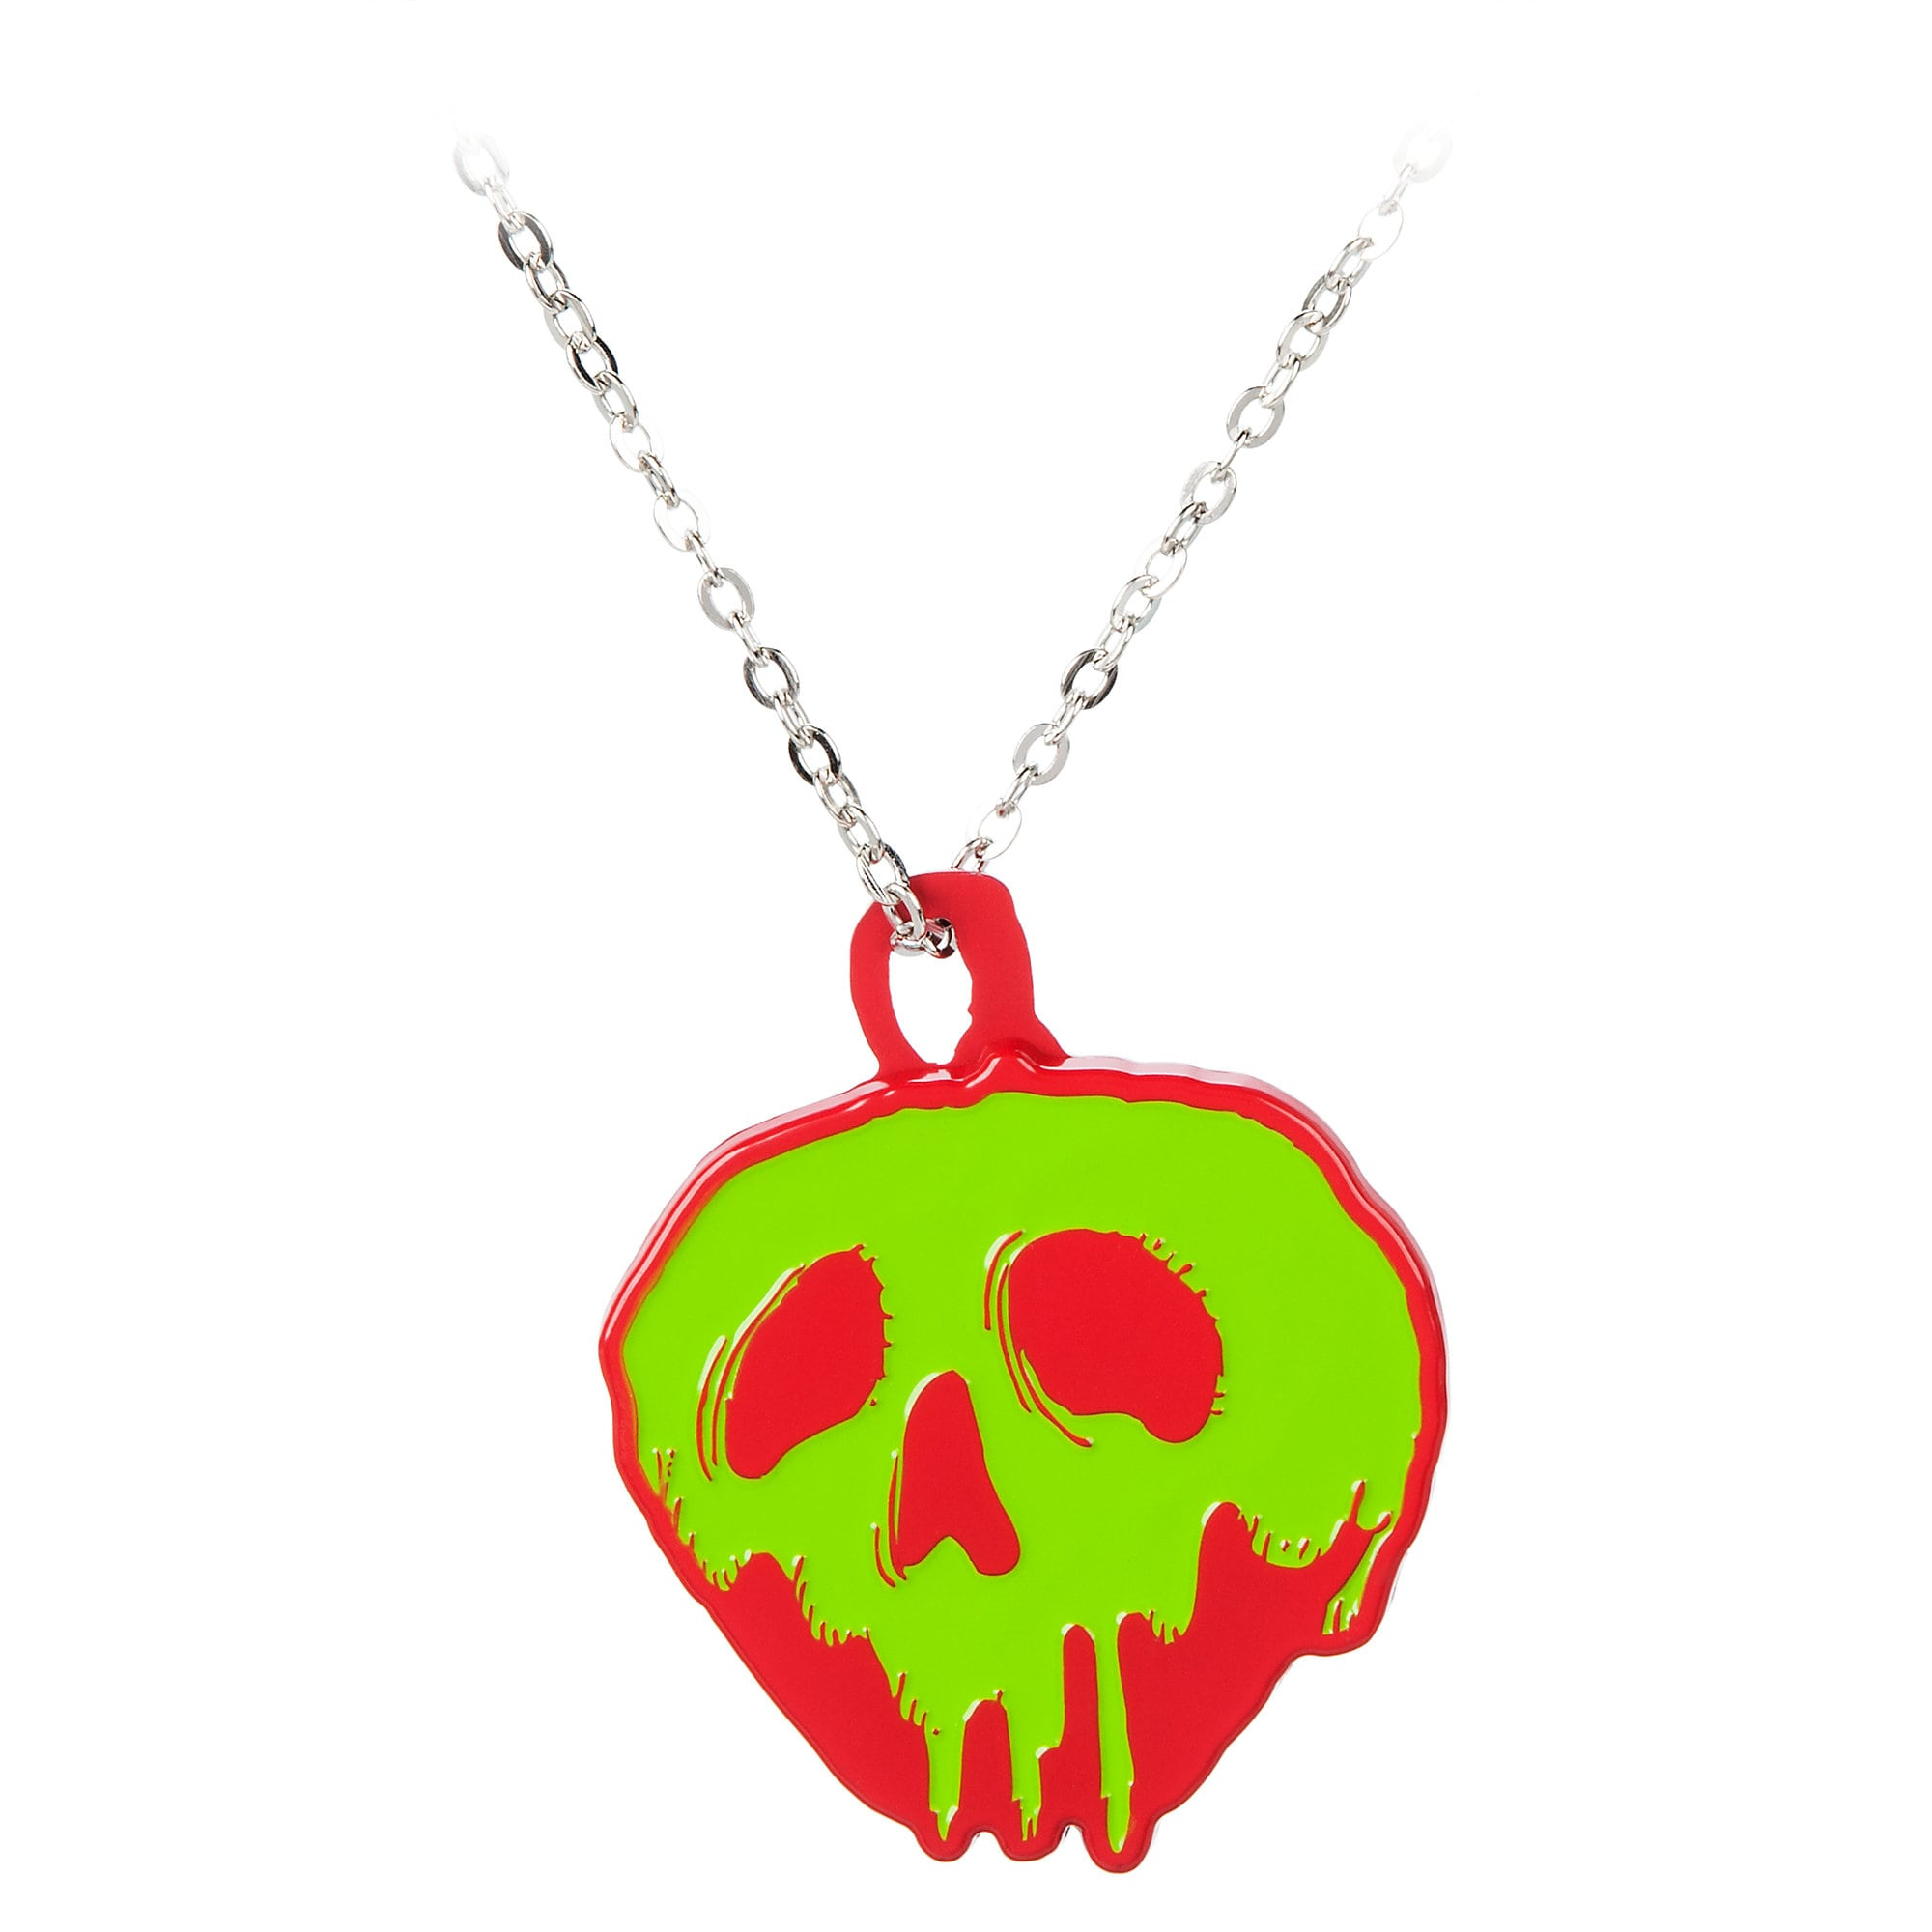 Poisoned Apple Necklace with Compact Mirror - Snow White and the Seven Dwarfs